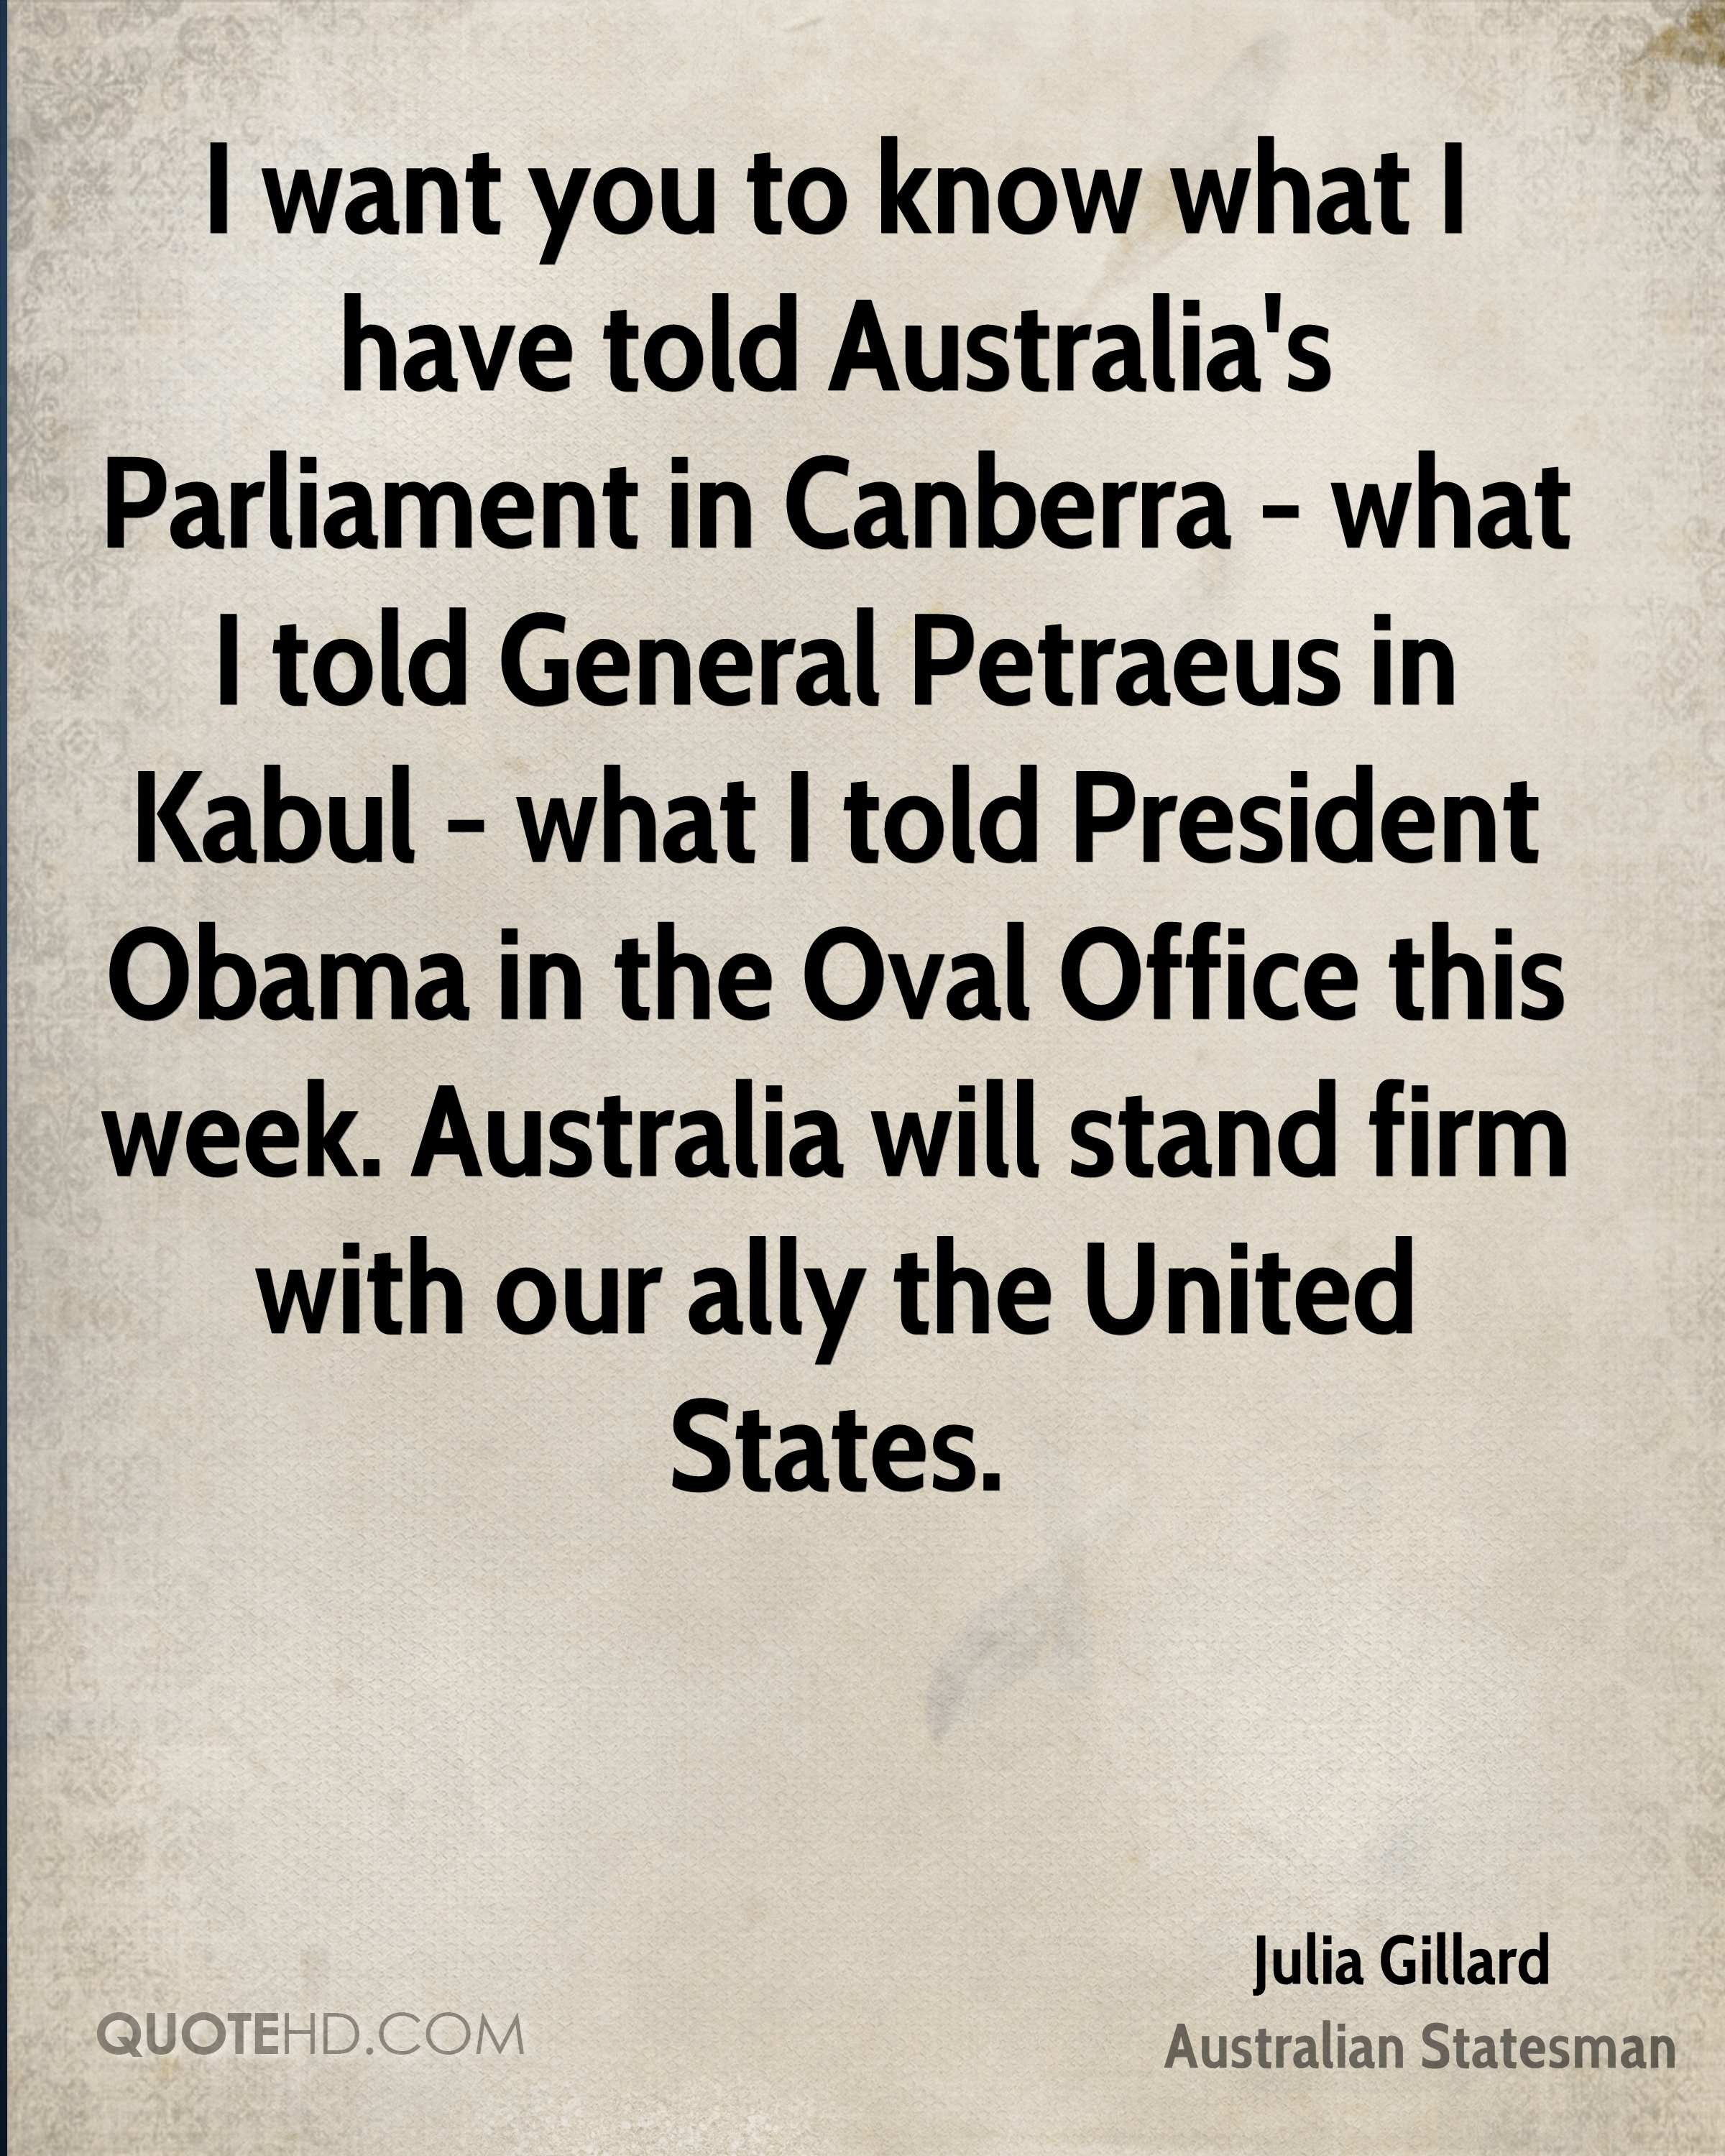 I want you to know what I have told Australia's Parliament in Canberra - what I told General Petraeus in Kabul - what I told President Obama in the Oval Office this week. Australia will stand firm with our ally the United States.